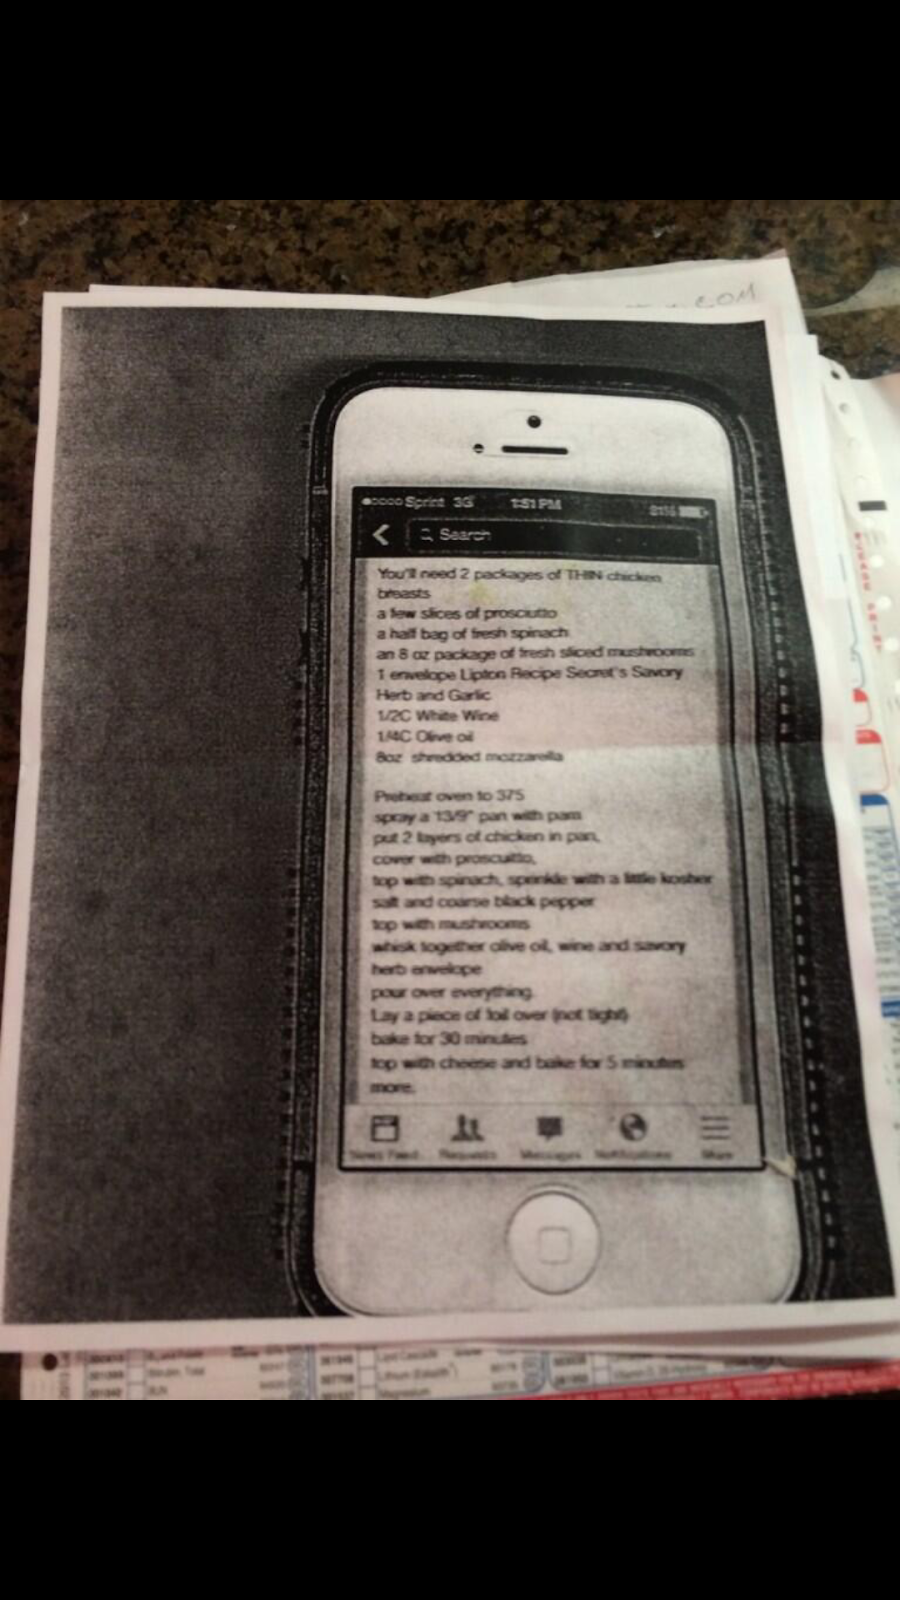 I didn't know to take screenshot so photocopied my iPhone